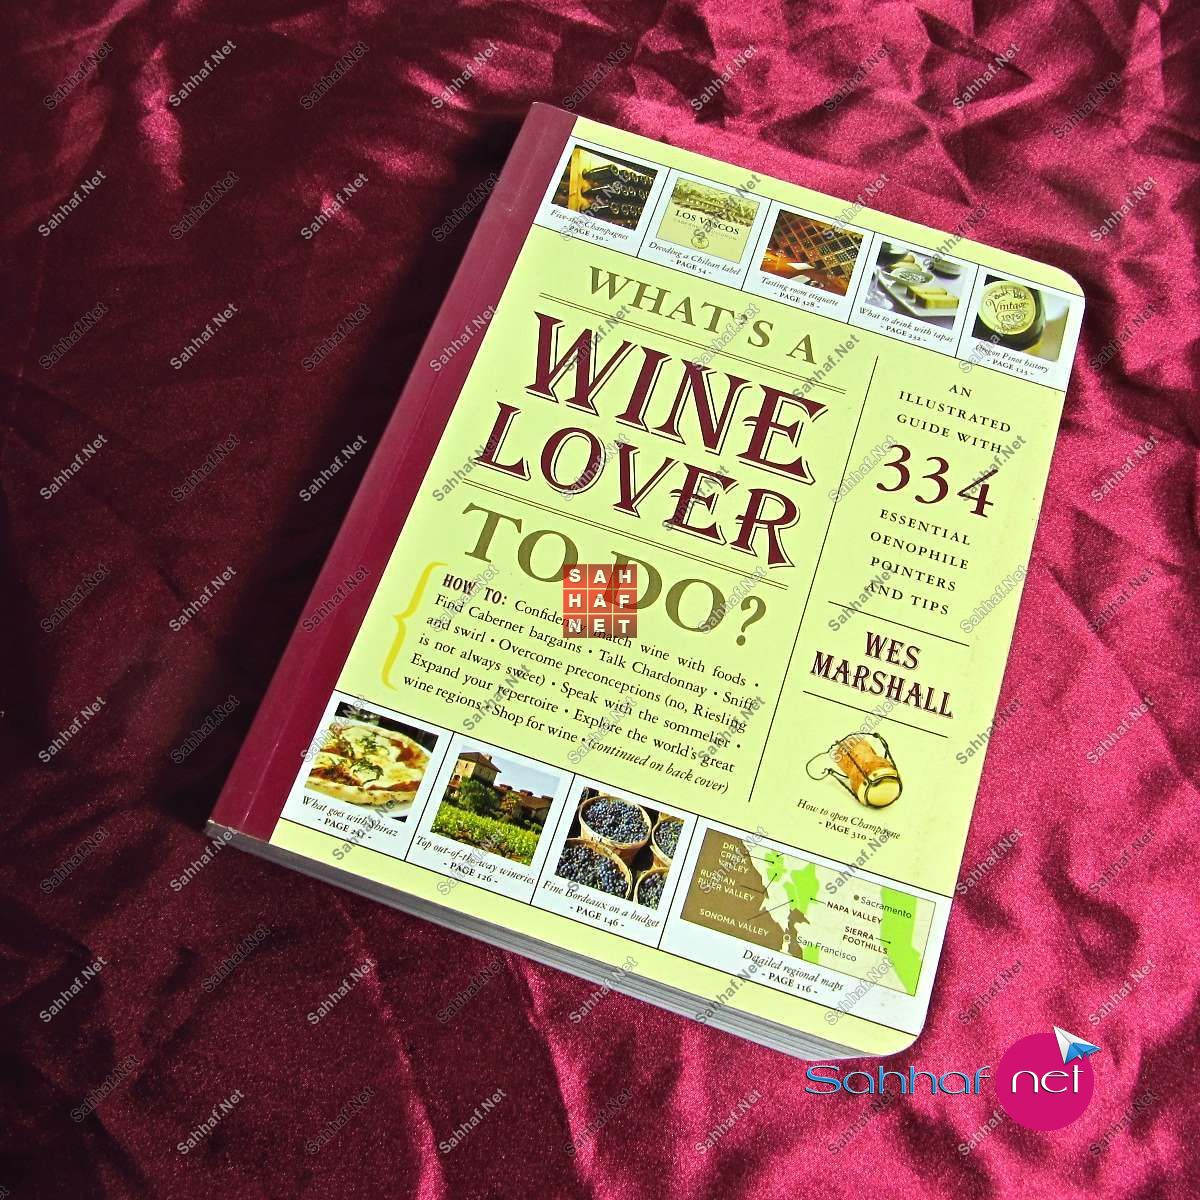 WHAT'S A WINE LOVER TO DO – Wes Marshall Kitap